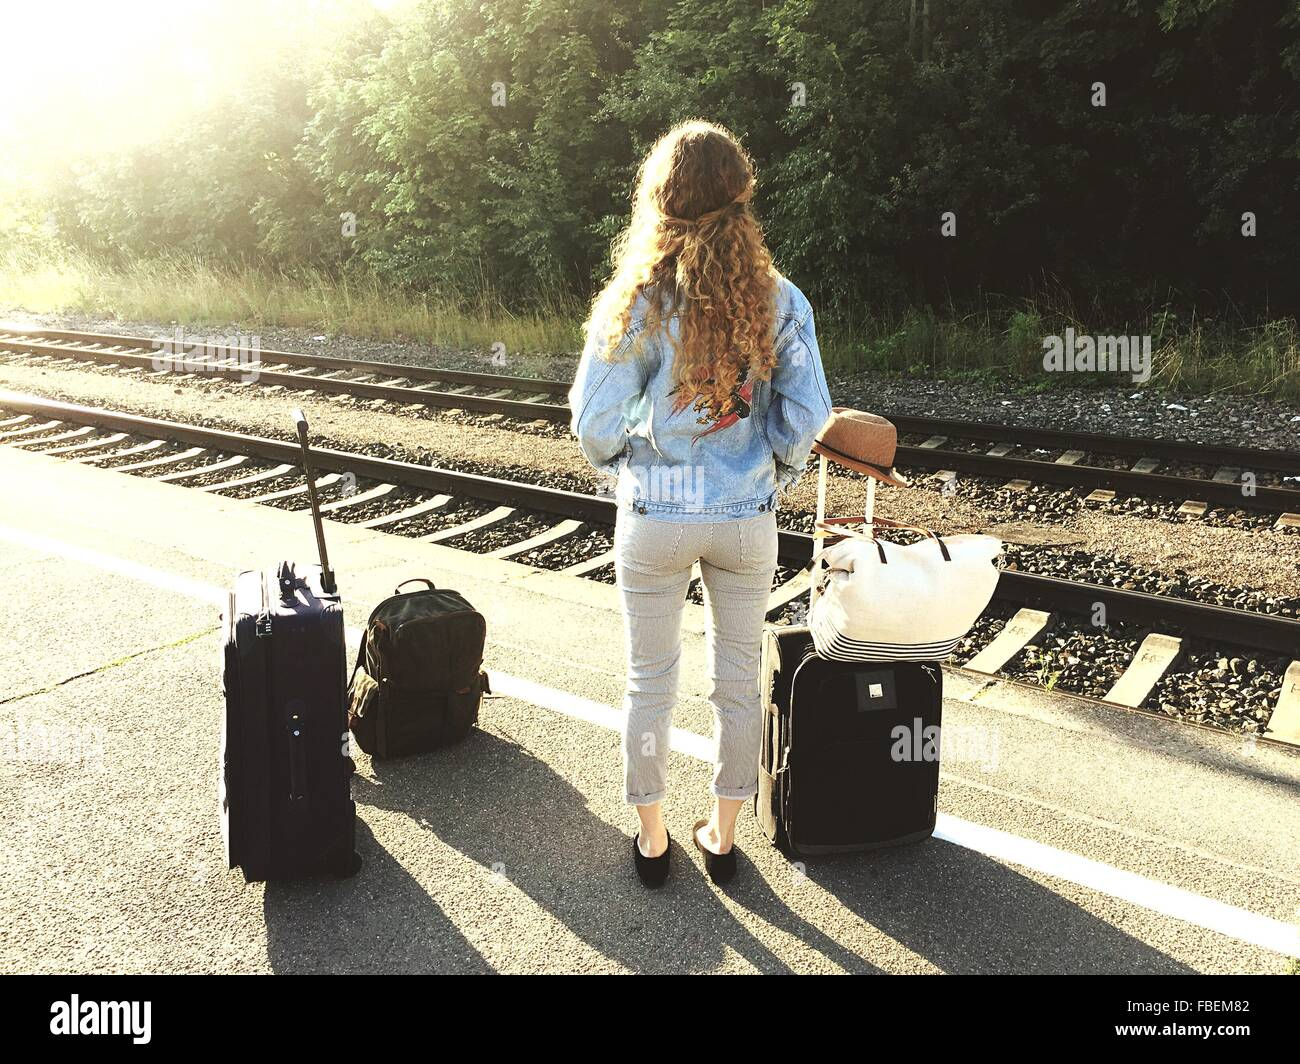 Full Length Rear View Of Woman With Luggage Standing On Railroad Station Platform - Stock Image